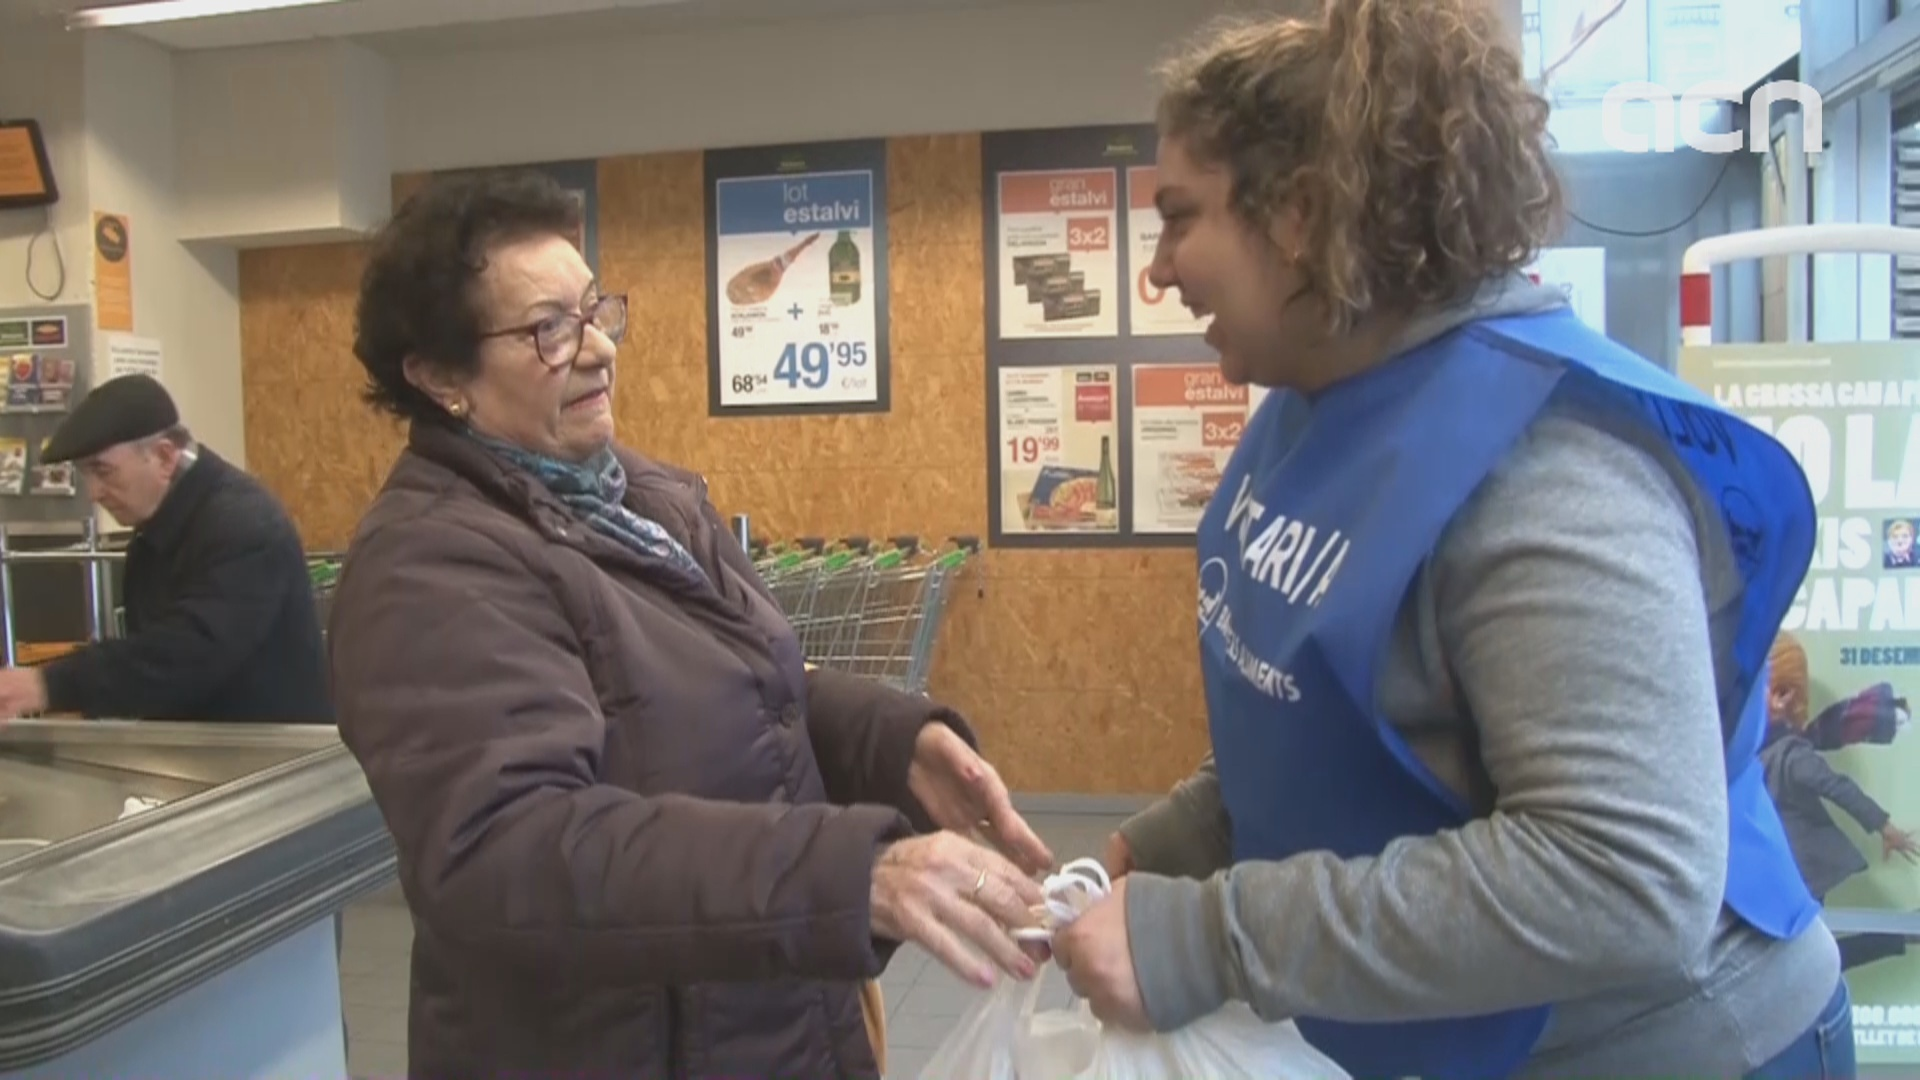 The Gran Recapte food drive for the homeless gets underway